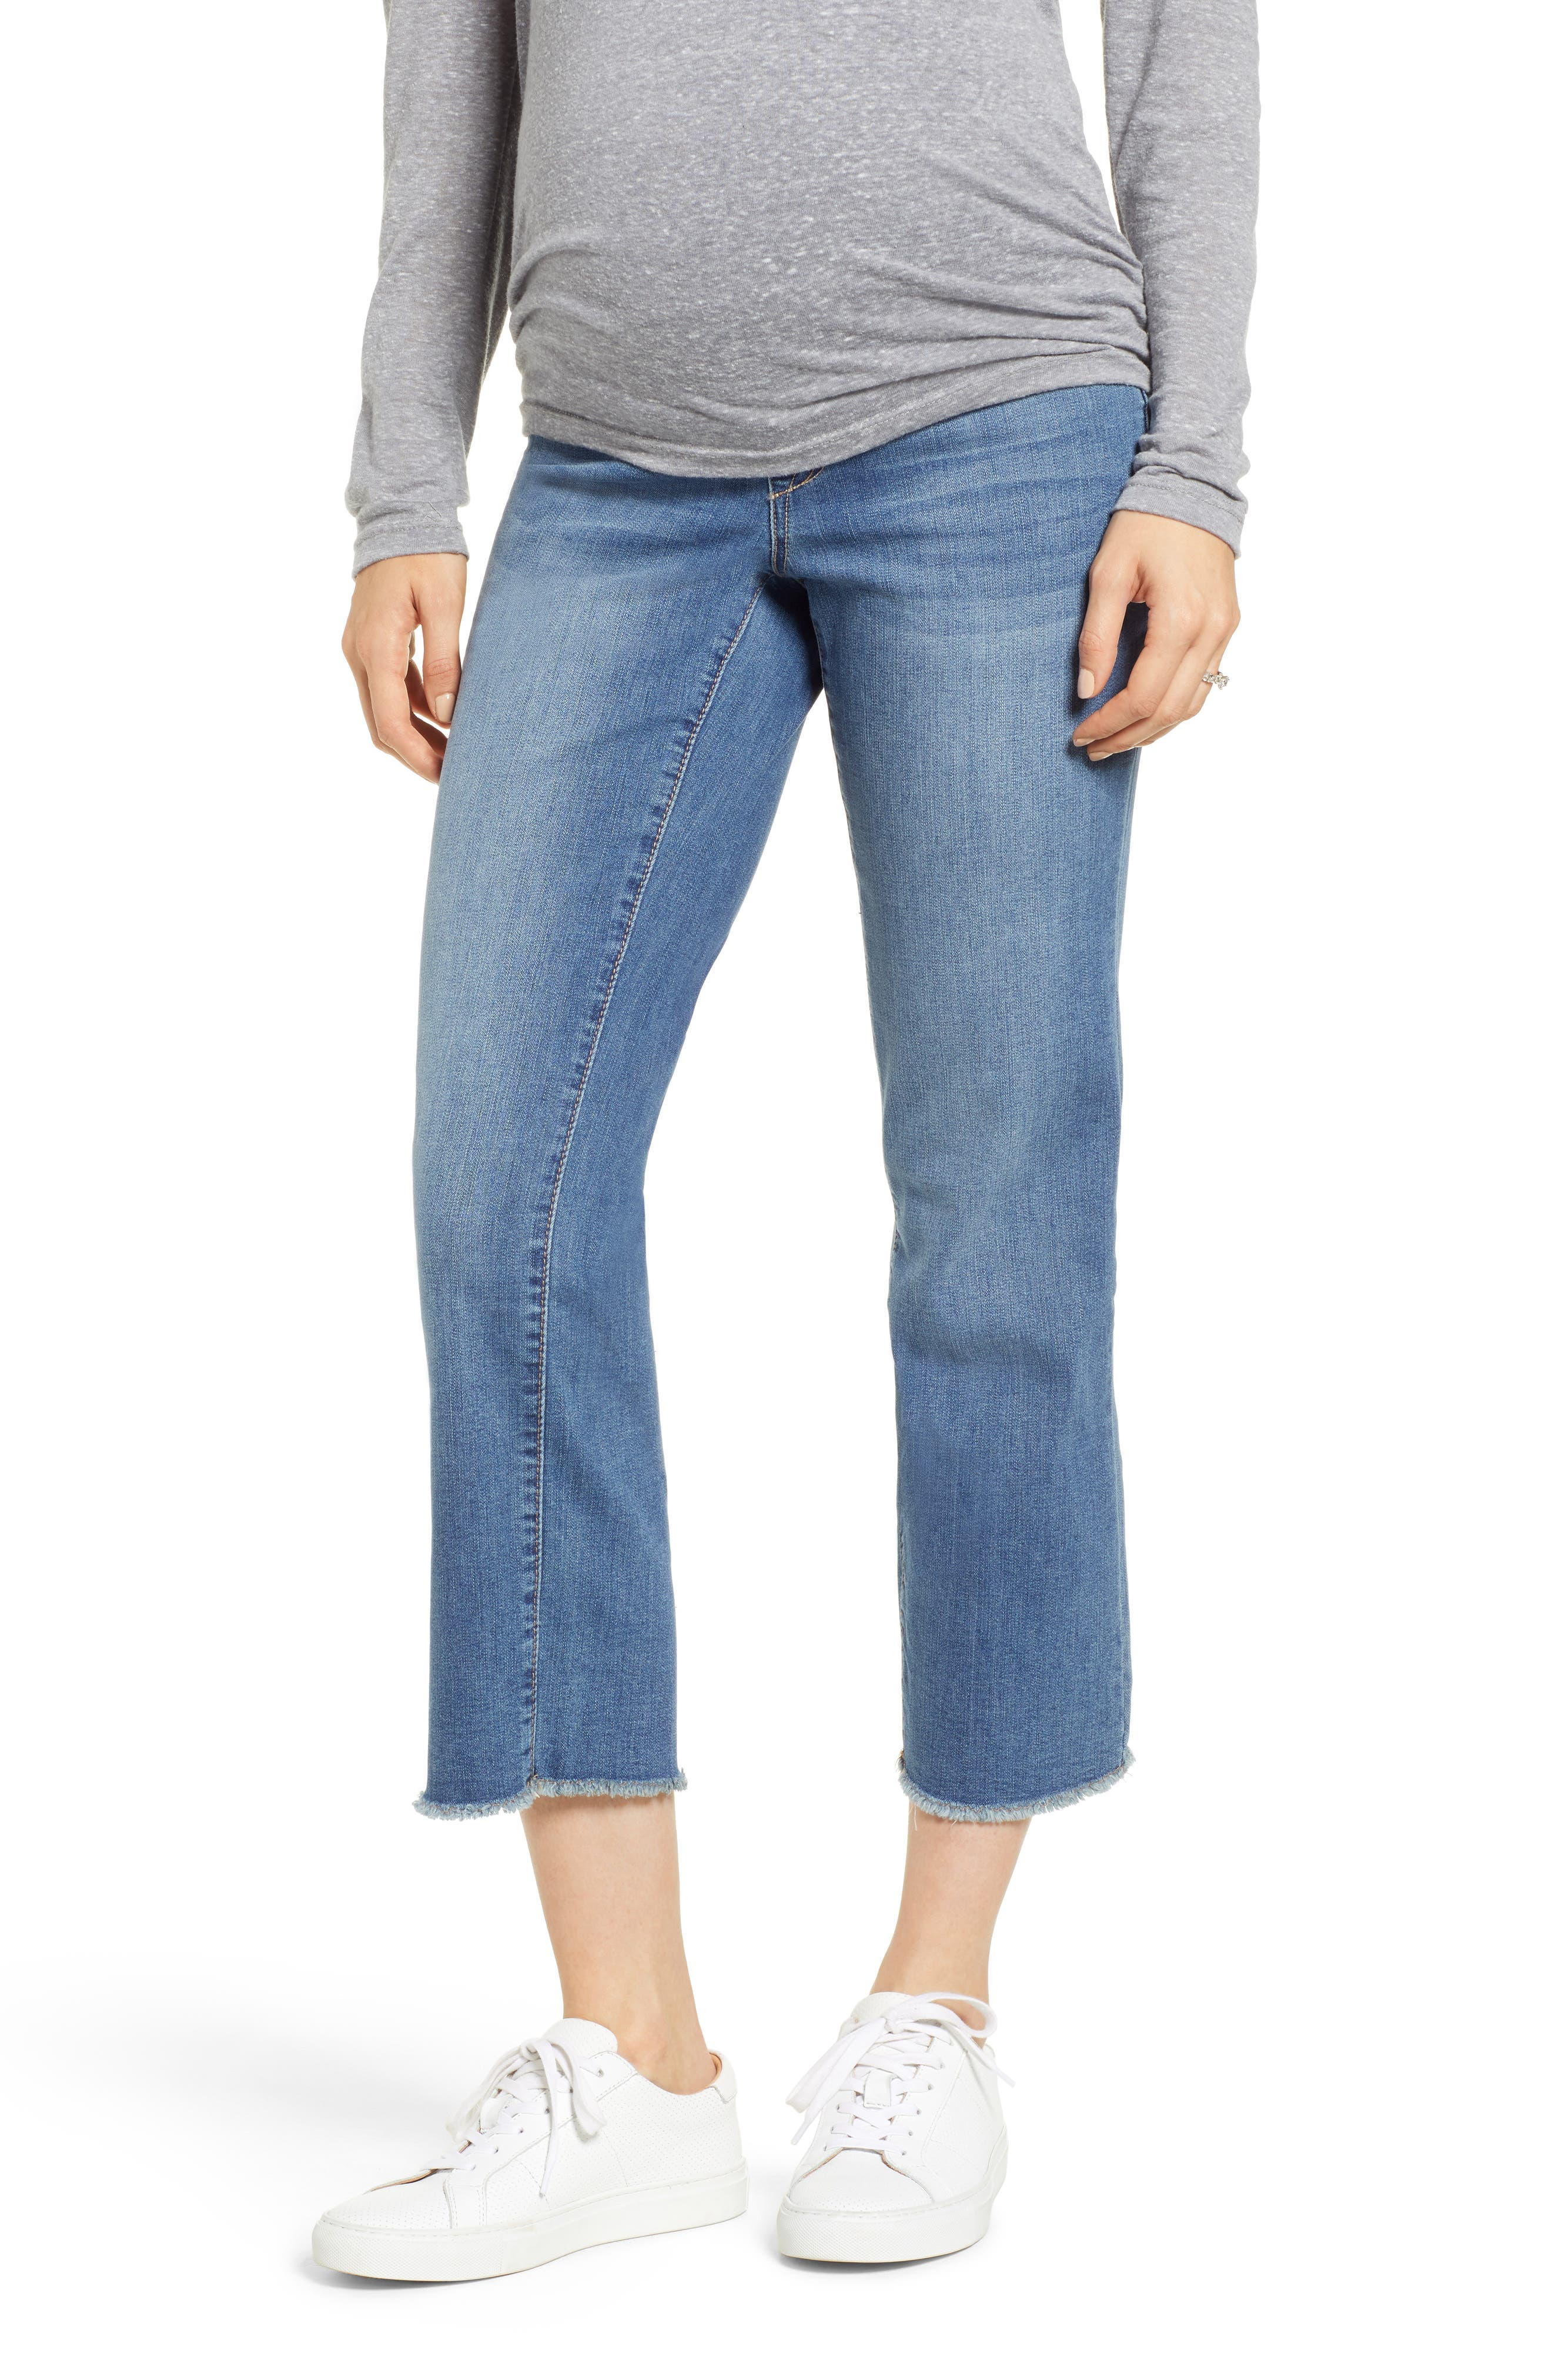 Women's 1822 Denim Fray Hem Straight Leg Maternity Jeans